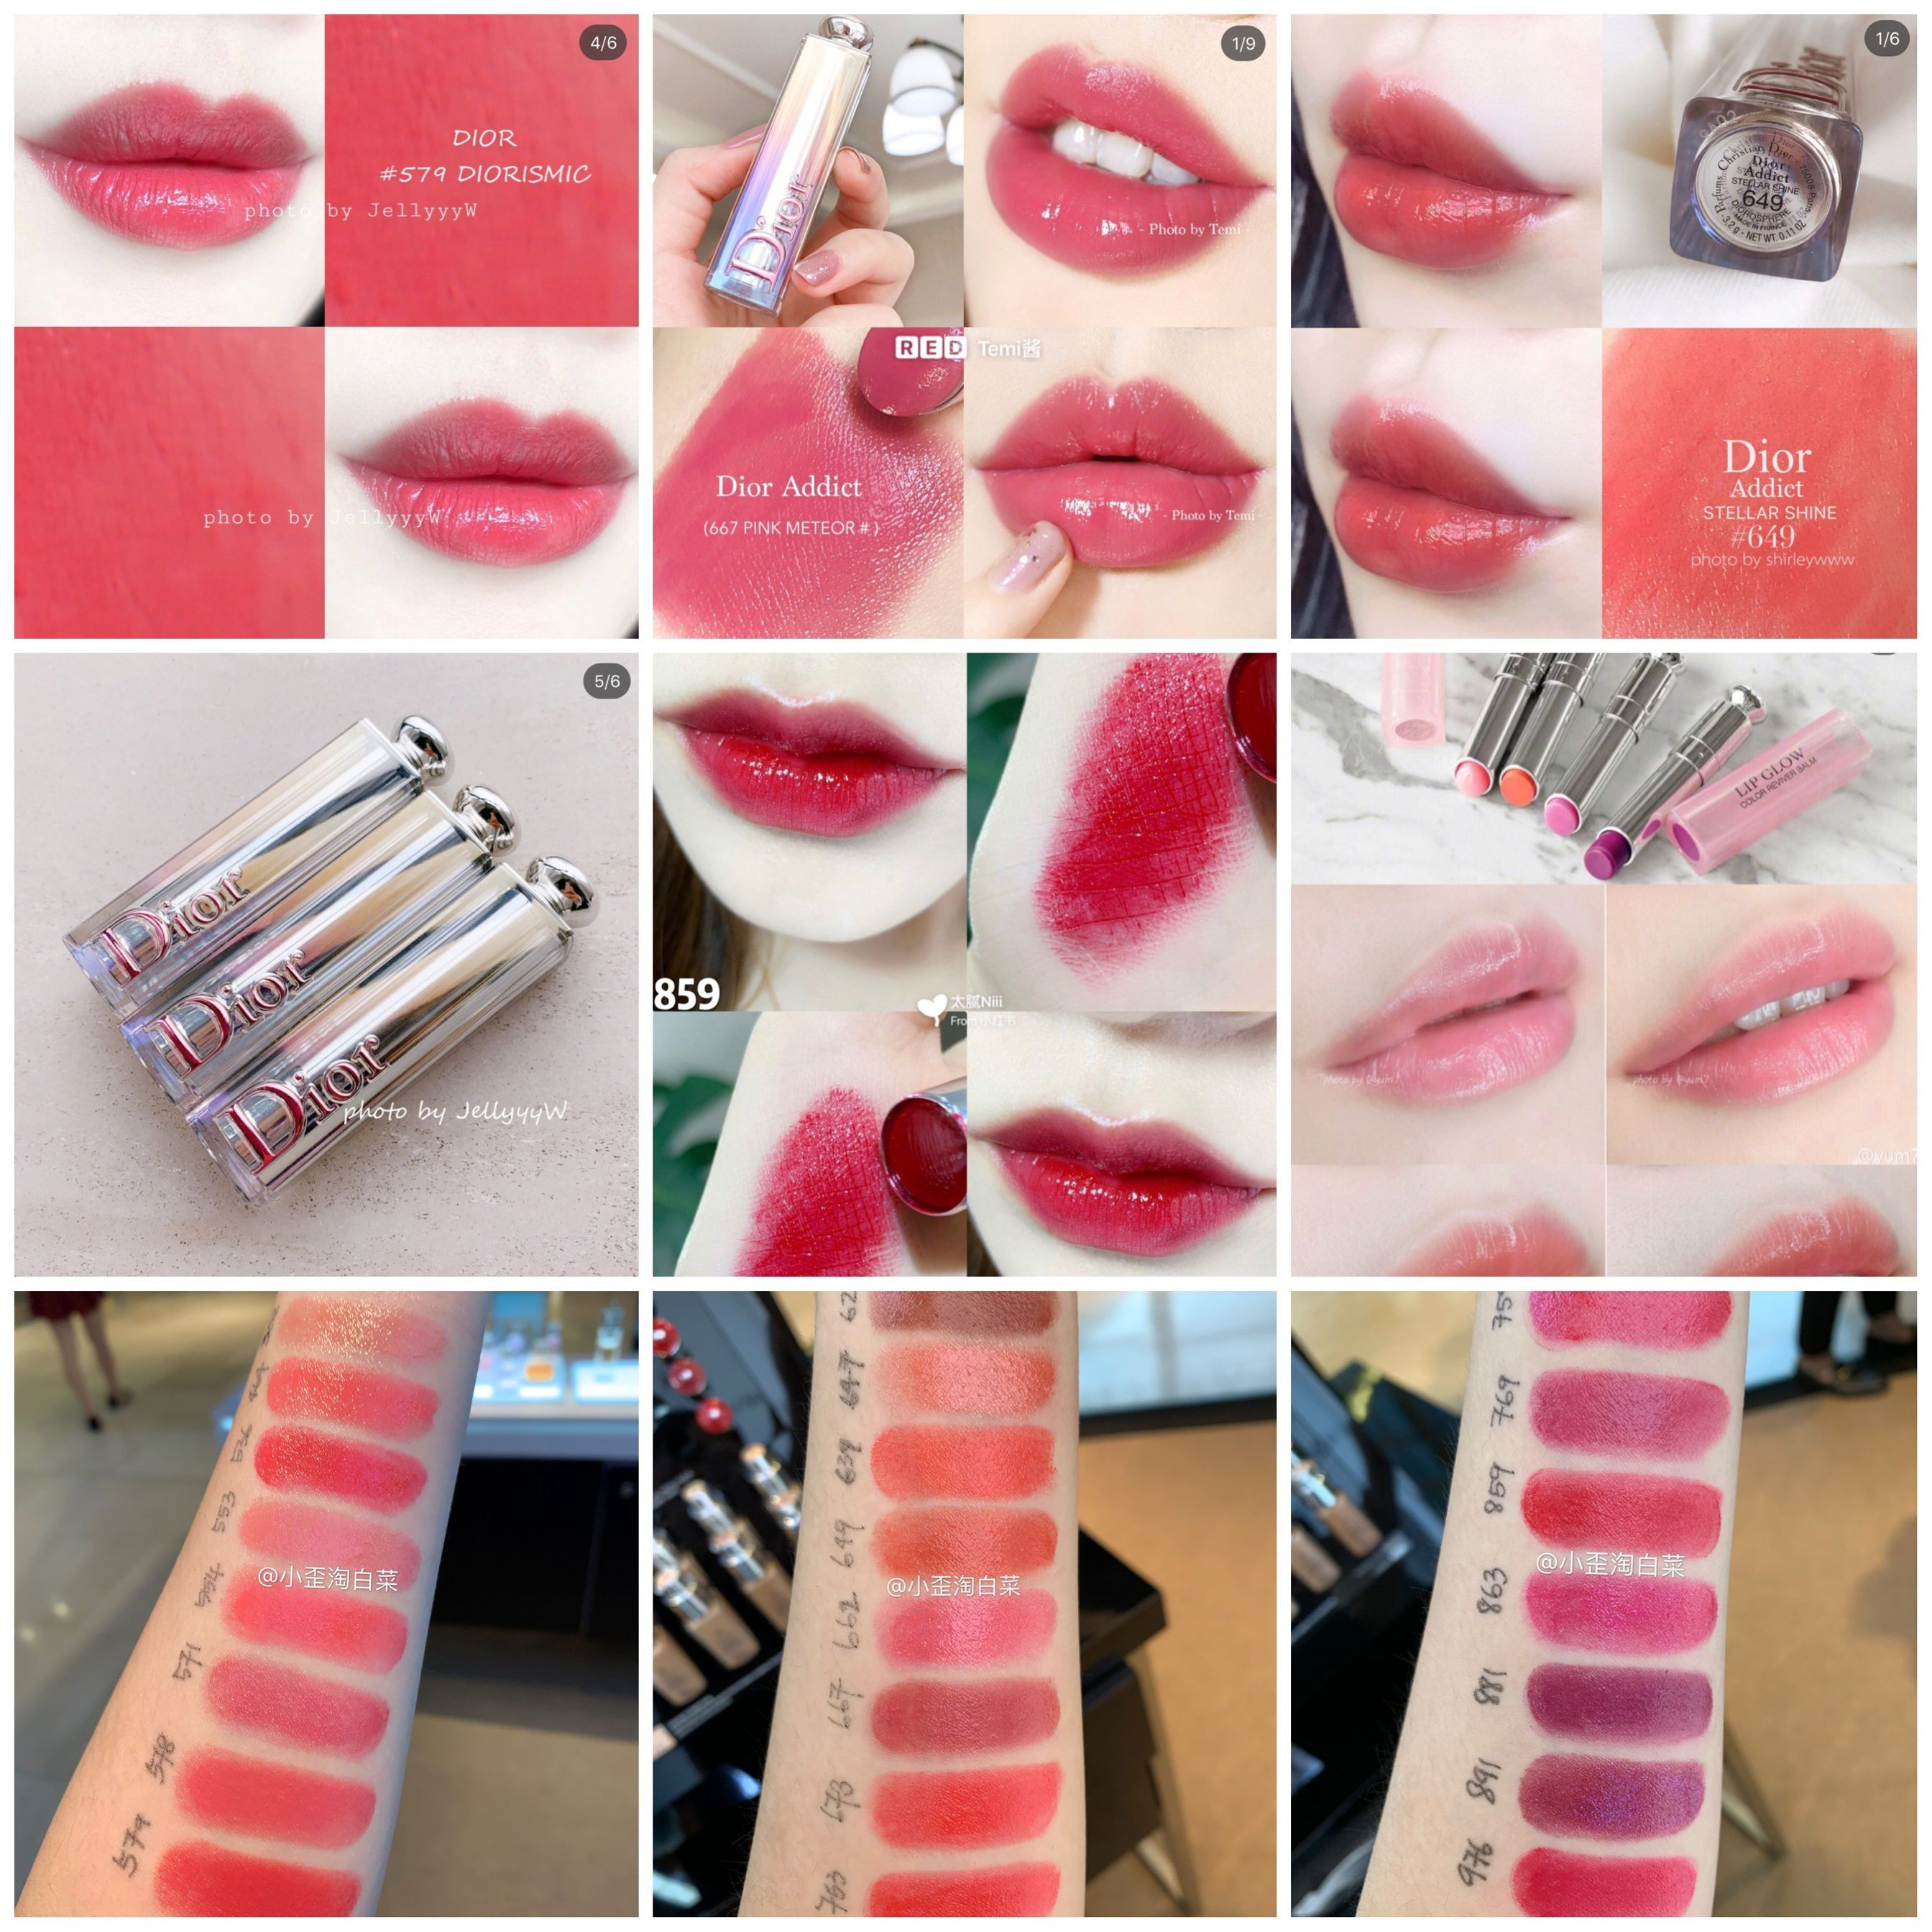 size 40 d5dc5 27e58 dior glamour Color Lip Balm 001 # 004 star shine new supermodel 667 # 579 #  649 # 859#976